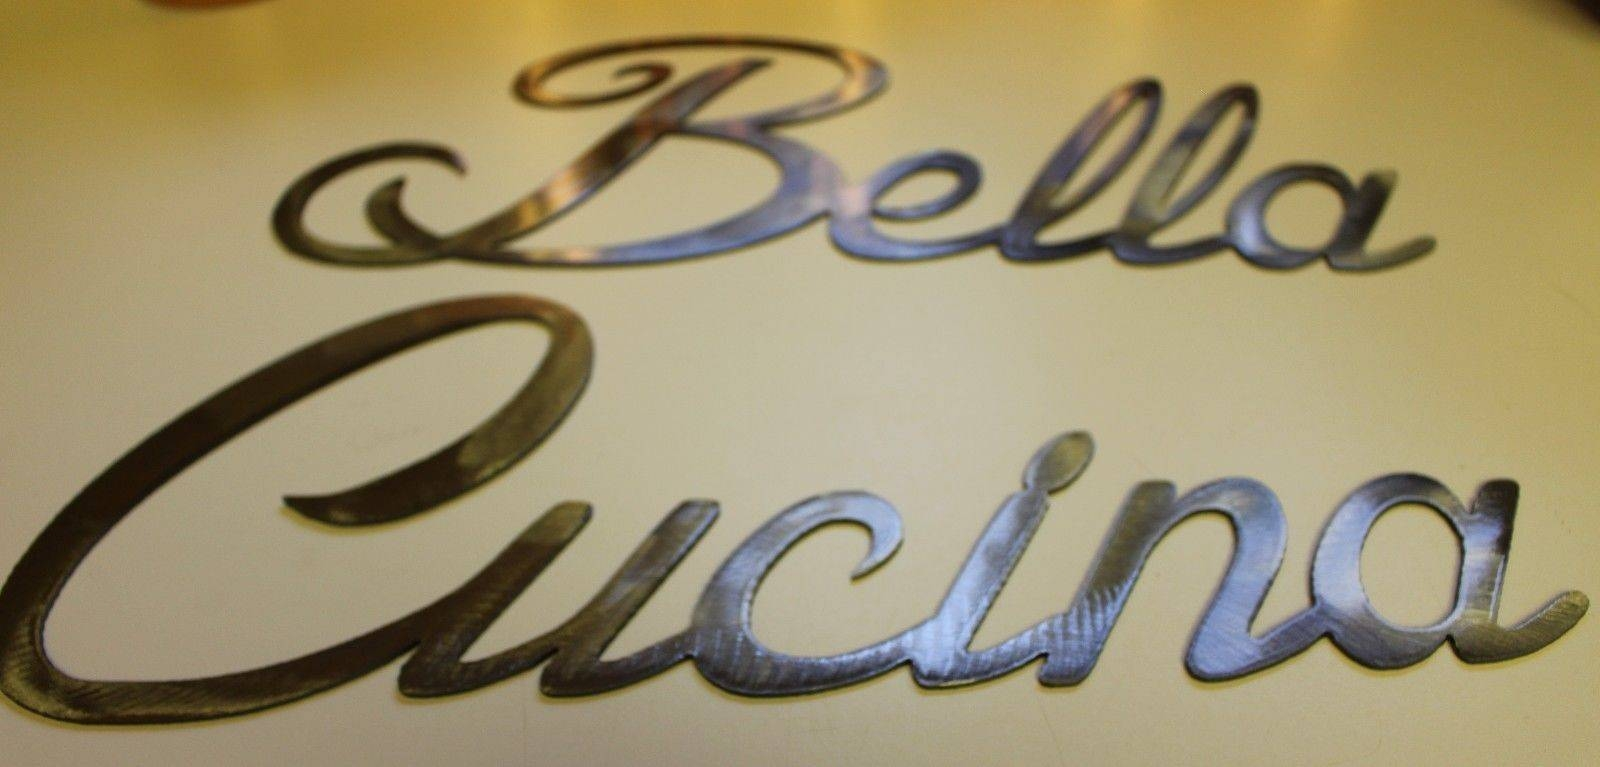 Bella Cucina Words Large Set Metal Wall Art Accents Silver Words For Most Current Cucina Wall Art (View 18 of 30)